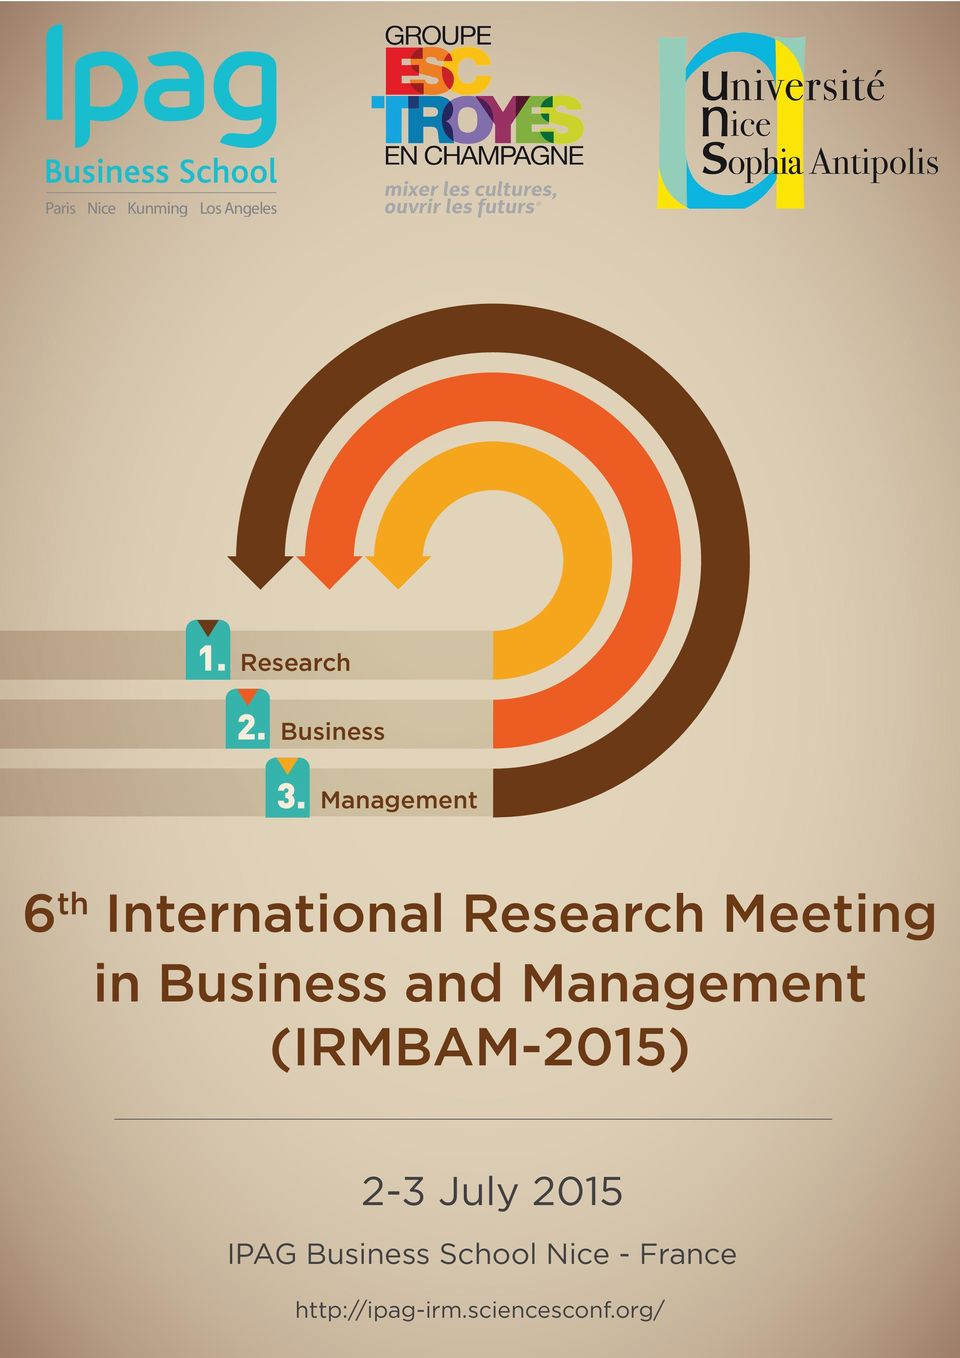 Business and Management (IRMBAM-2015) 2-3 July 2015